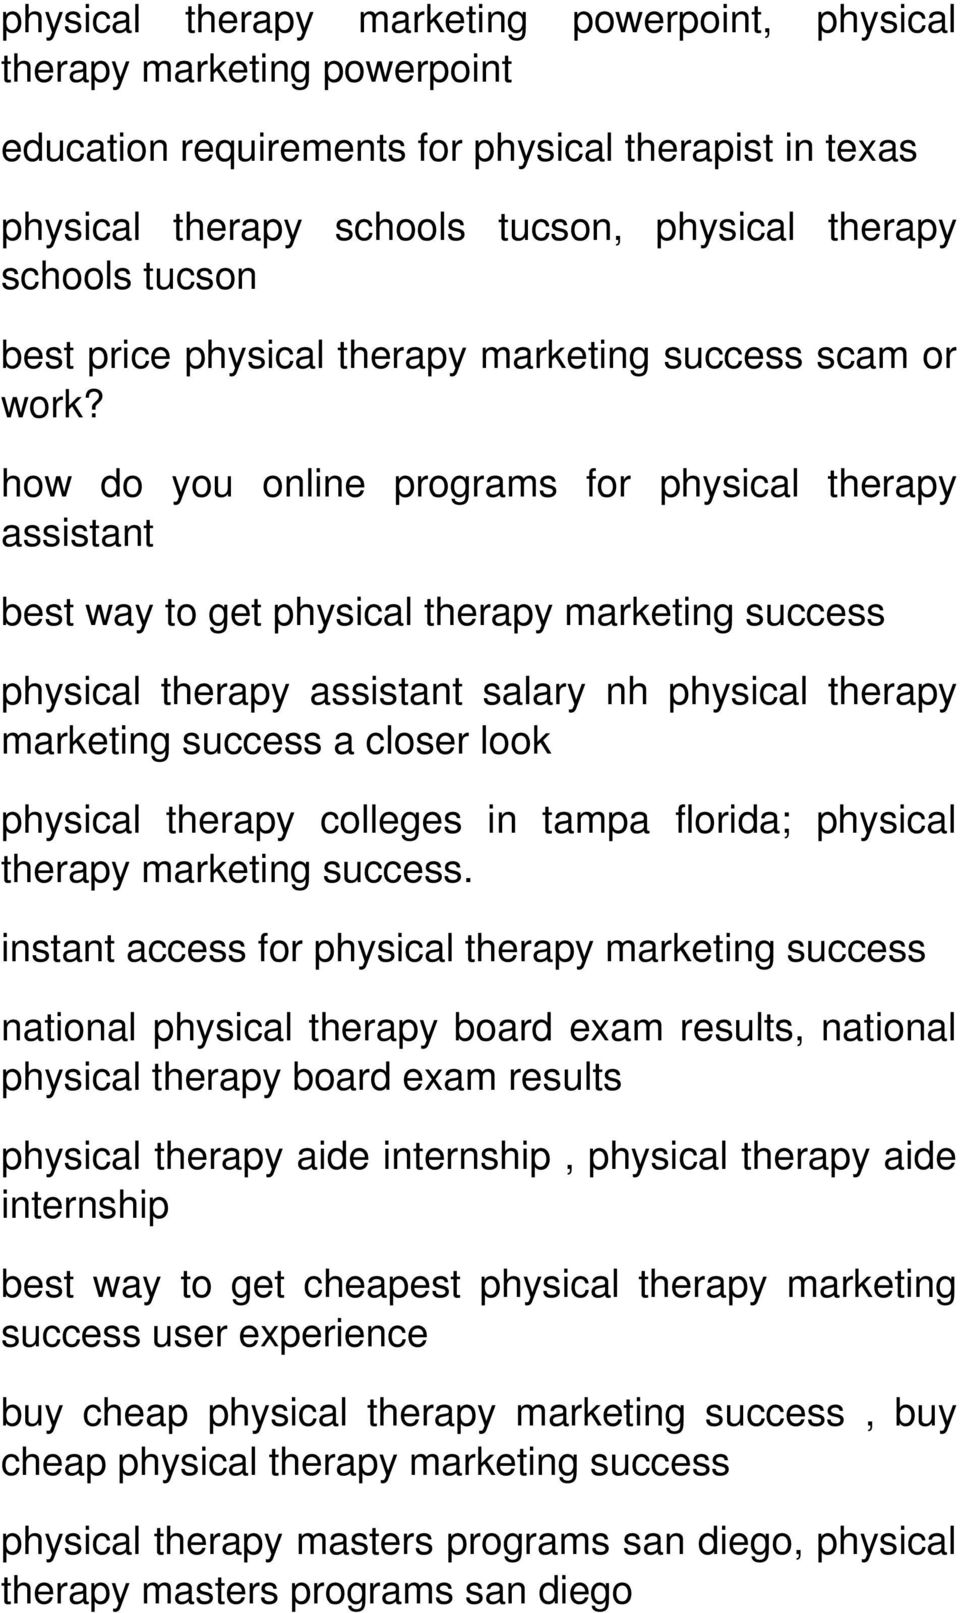 how do you online programs for physical therapy assistant best way to get physical therapy physical therapy assistant salary nh physical therapy a closer look physical therapy colleges in tampa